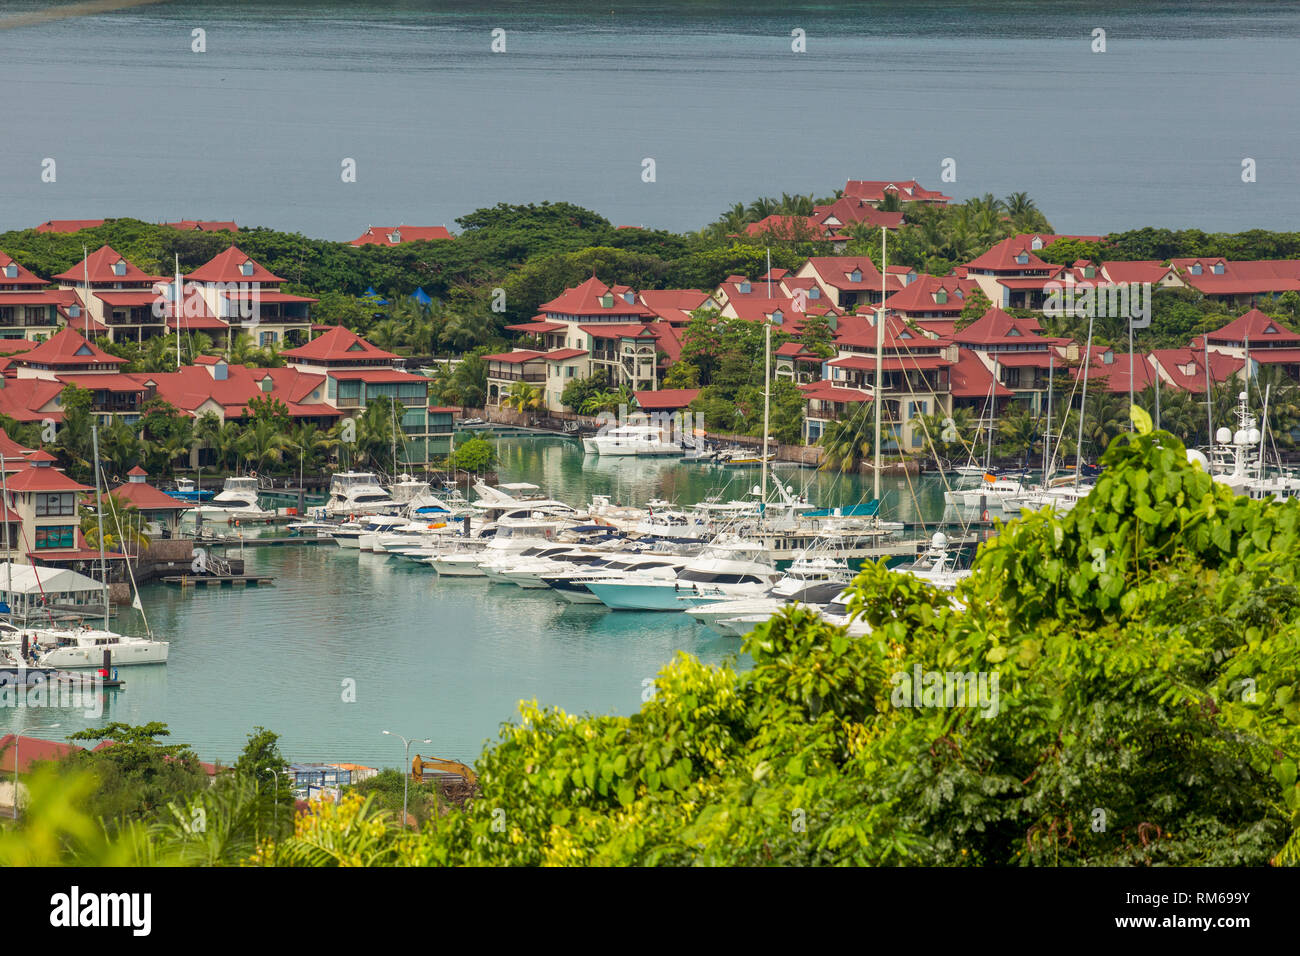 Victoria is the capital city of Seychelles and is situated on the north-eastern side of Mahé island, the archipelago's main island. - Stock Image